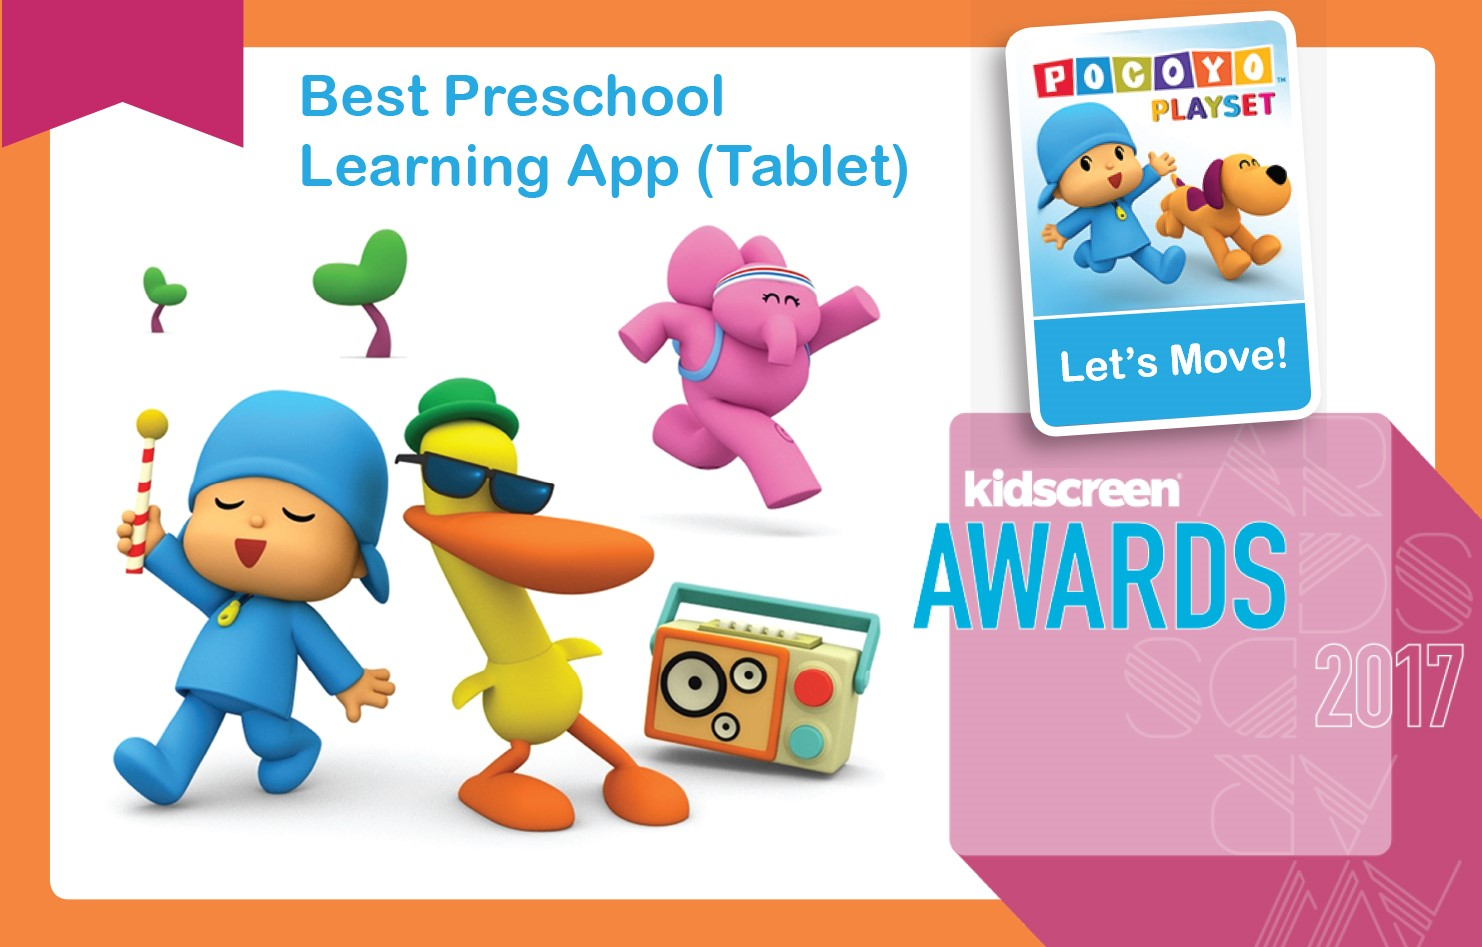 best preschool childrens learning app